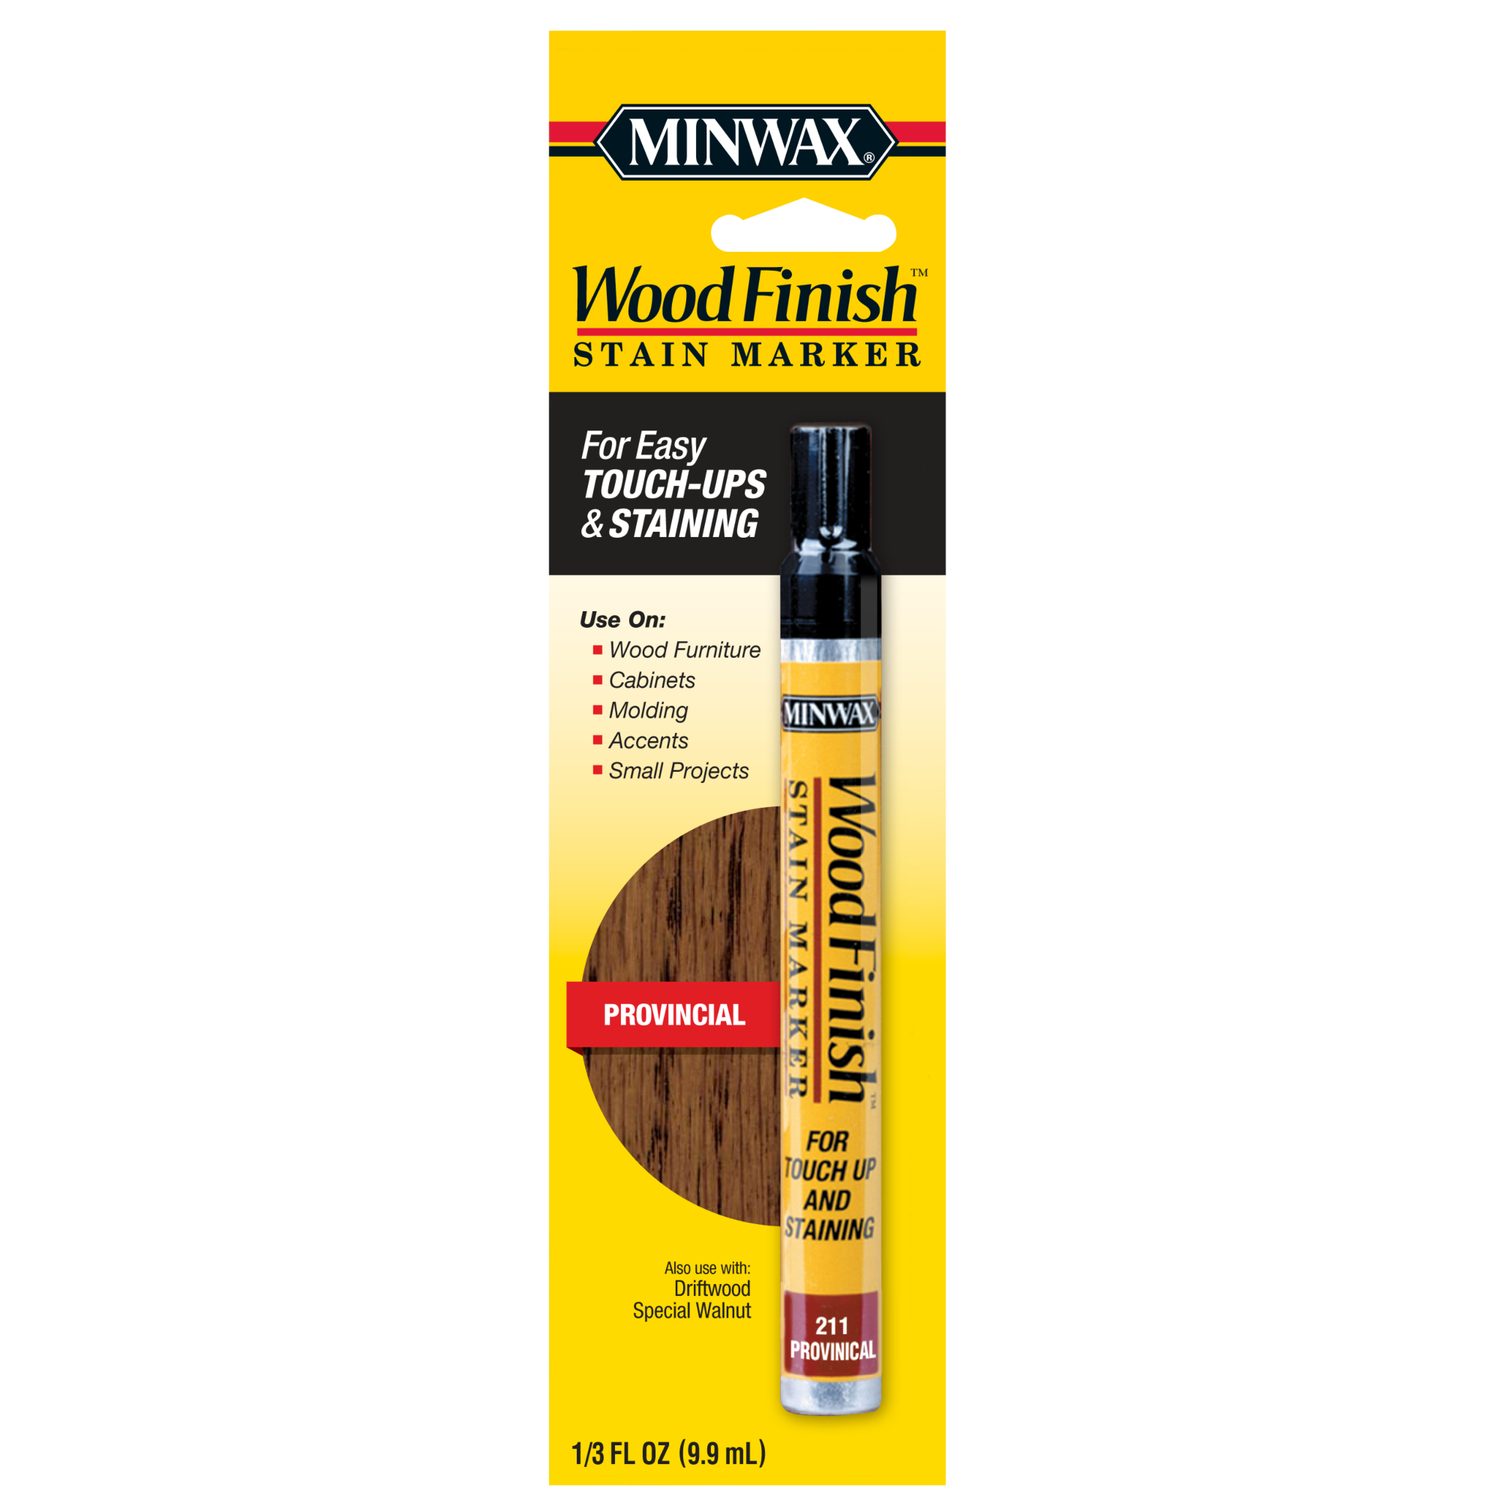 Minwax Wood Finish Semi Transparent Provincial Oil Based Stain Marker 033